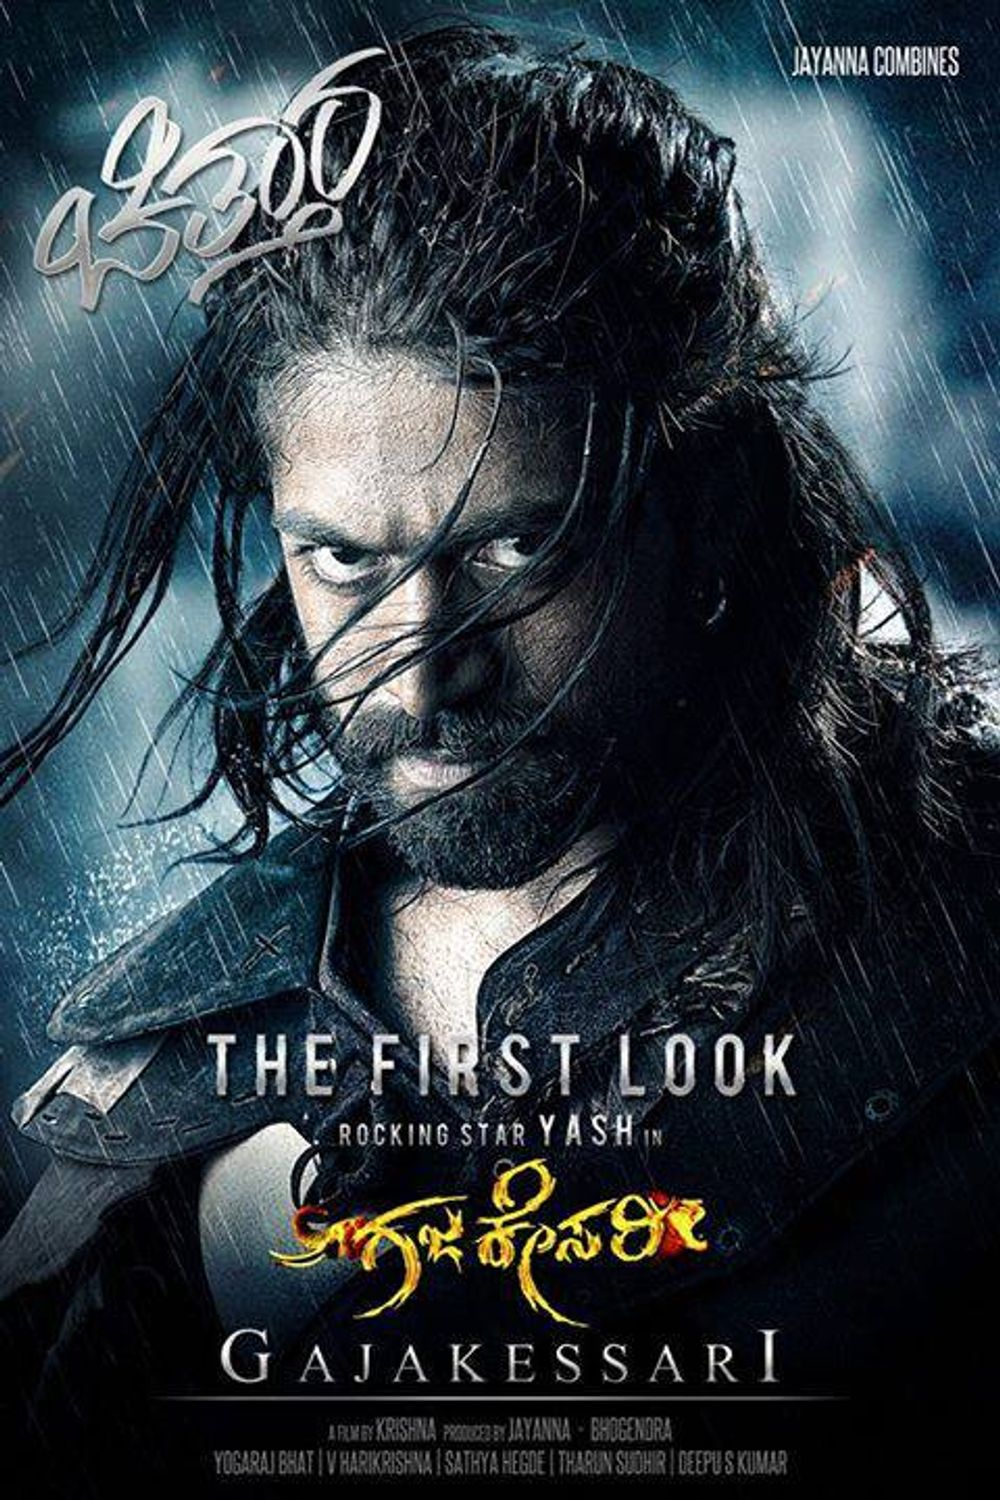 The Big Lion Gajakessari (Gajakesari) 2020 Hindi Dubbed 480p HDRip 400MB